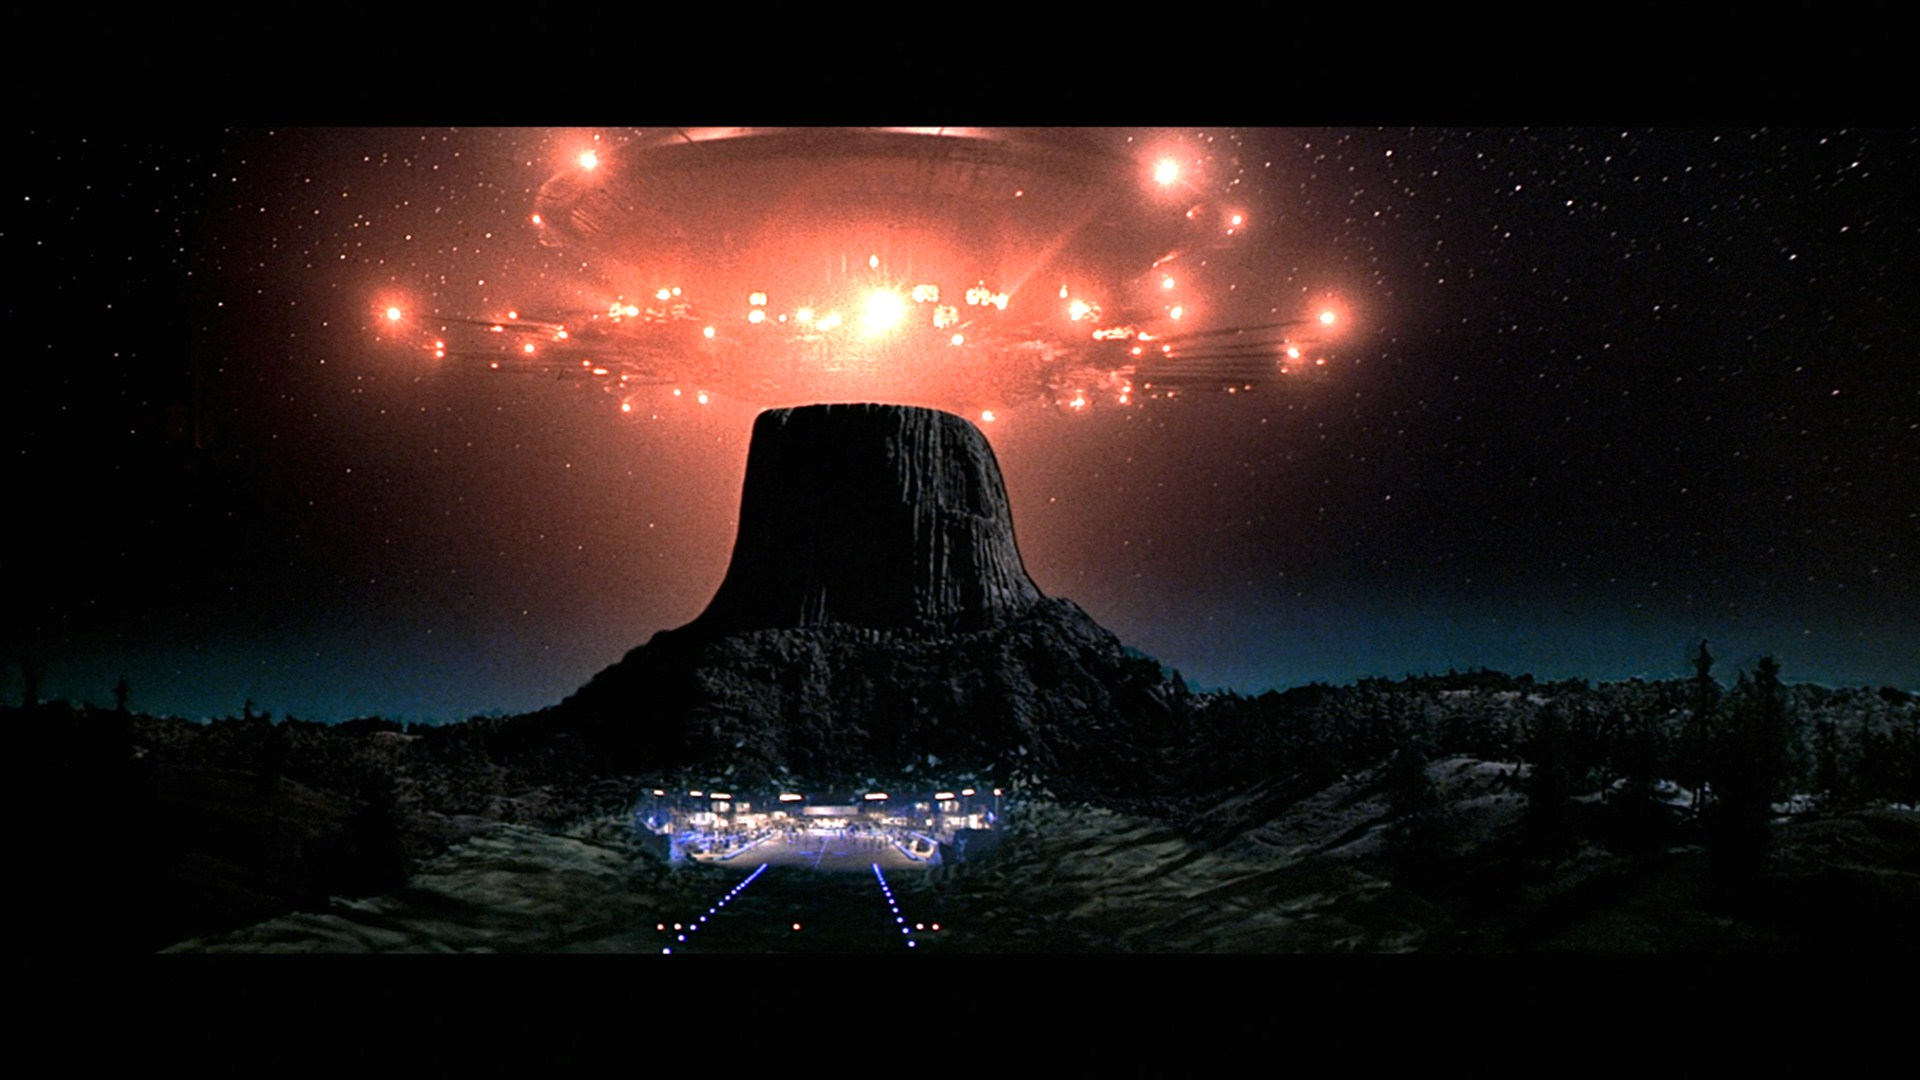 Still shot from the movie: Close Encounters Of The Third Kind.